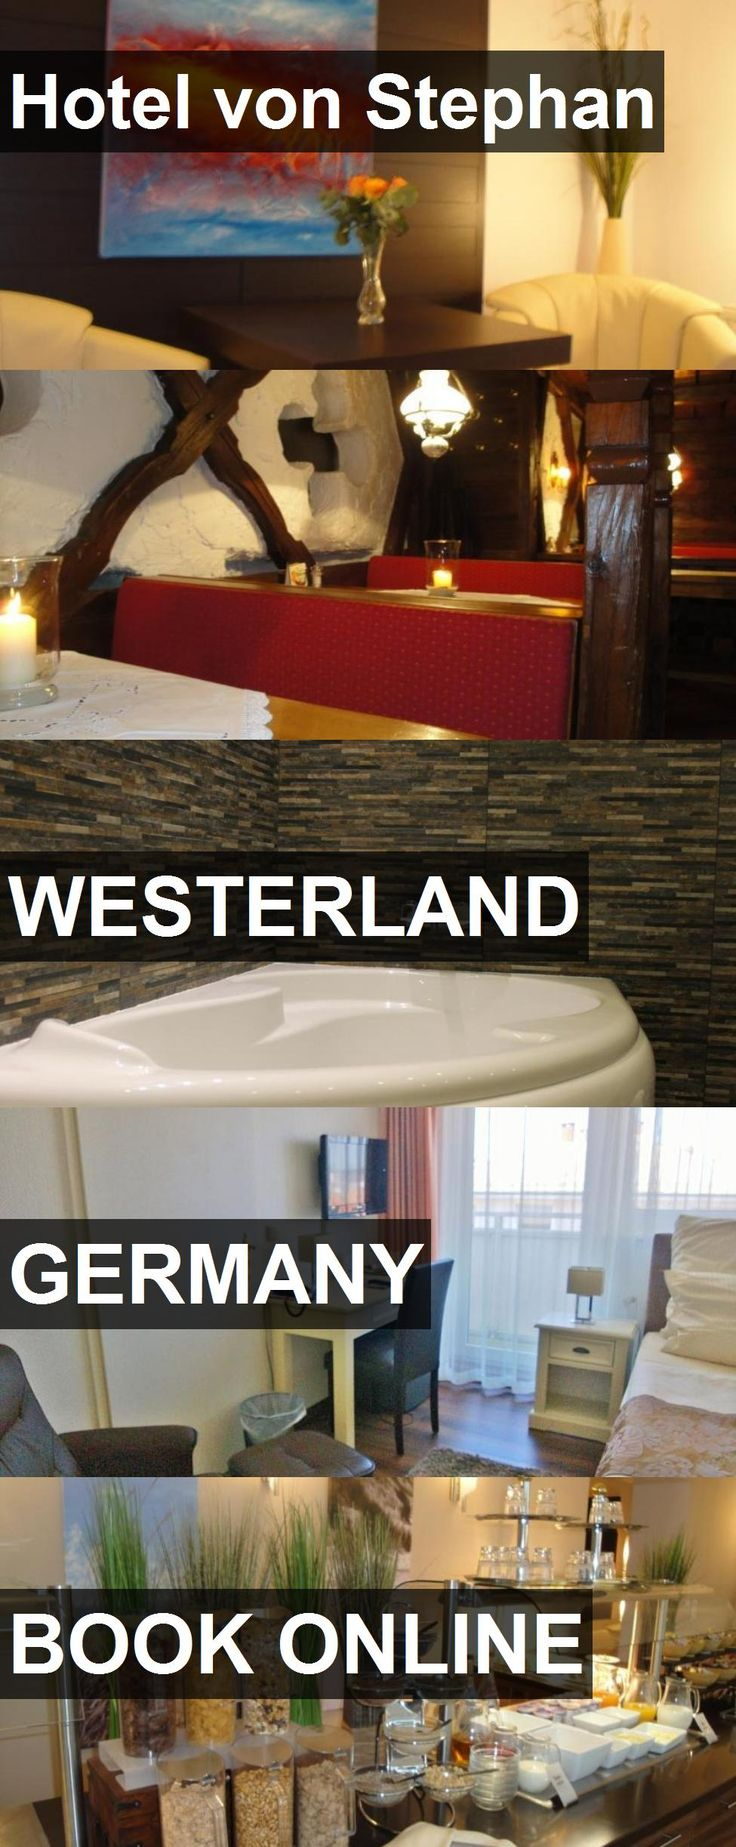 Hotel von Stephan in Westerland, Germany. For more information, photos, reviews and best prices please follow the link. #Germany #Westerland #travel #vacation #hotel